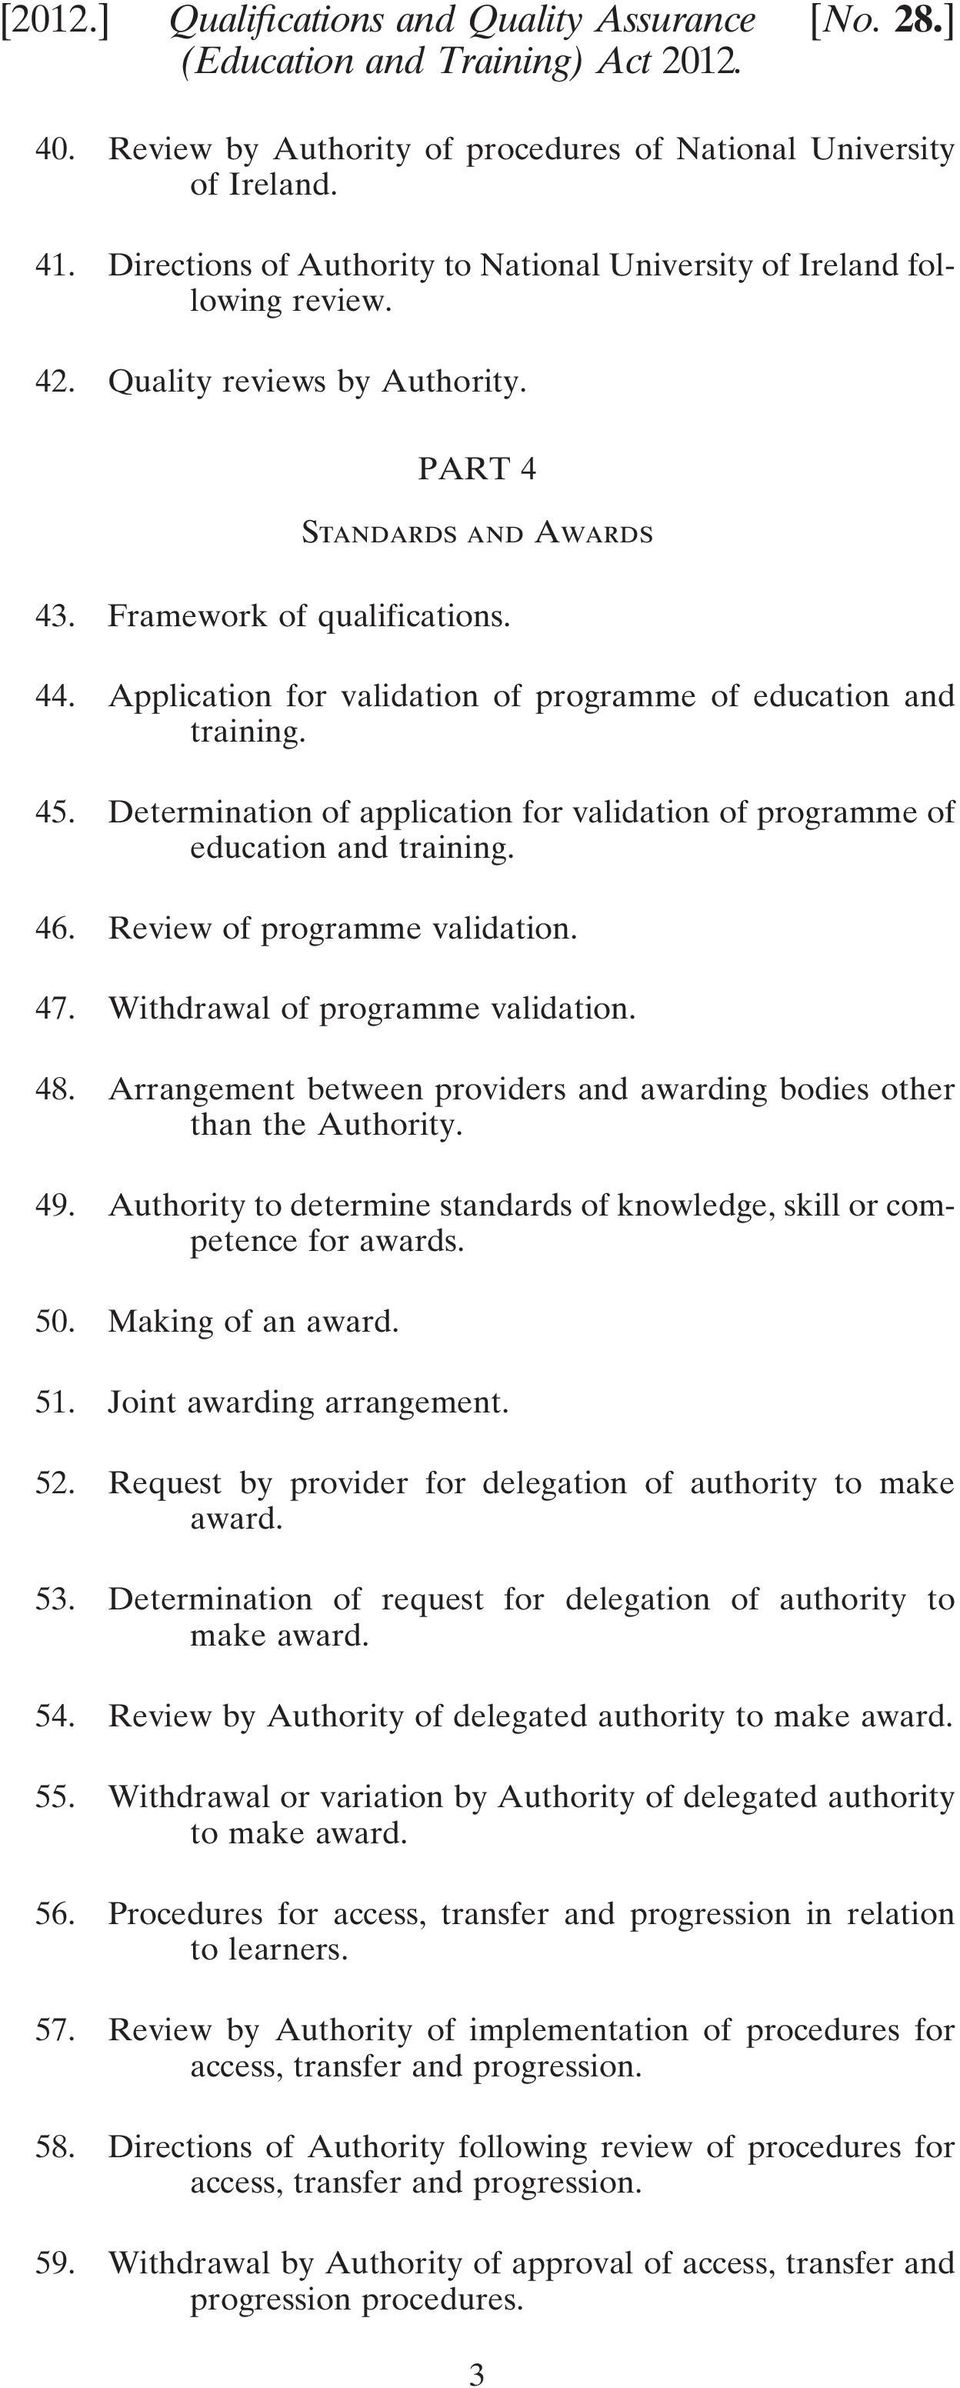 Application for validation of programme of education and training. 45. Determination of application for validation of programme of education and training. 46. Review of programme validation. 47.